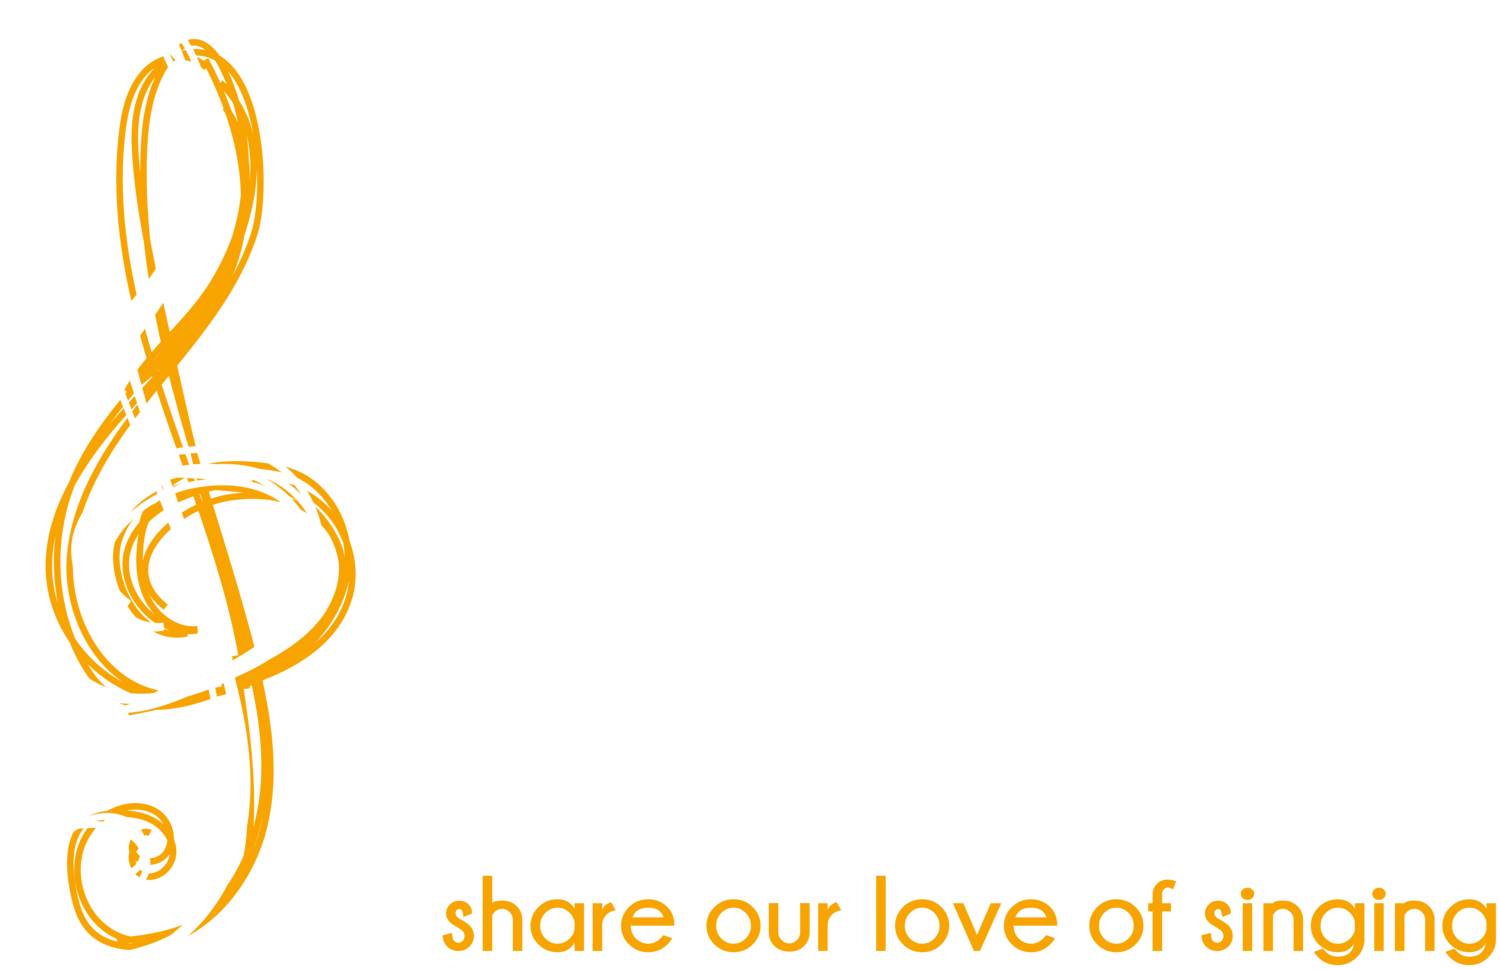 Barnes Community Choir